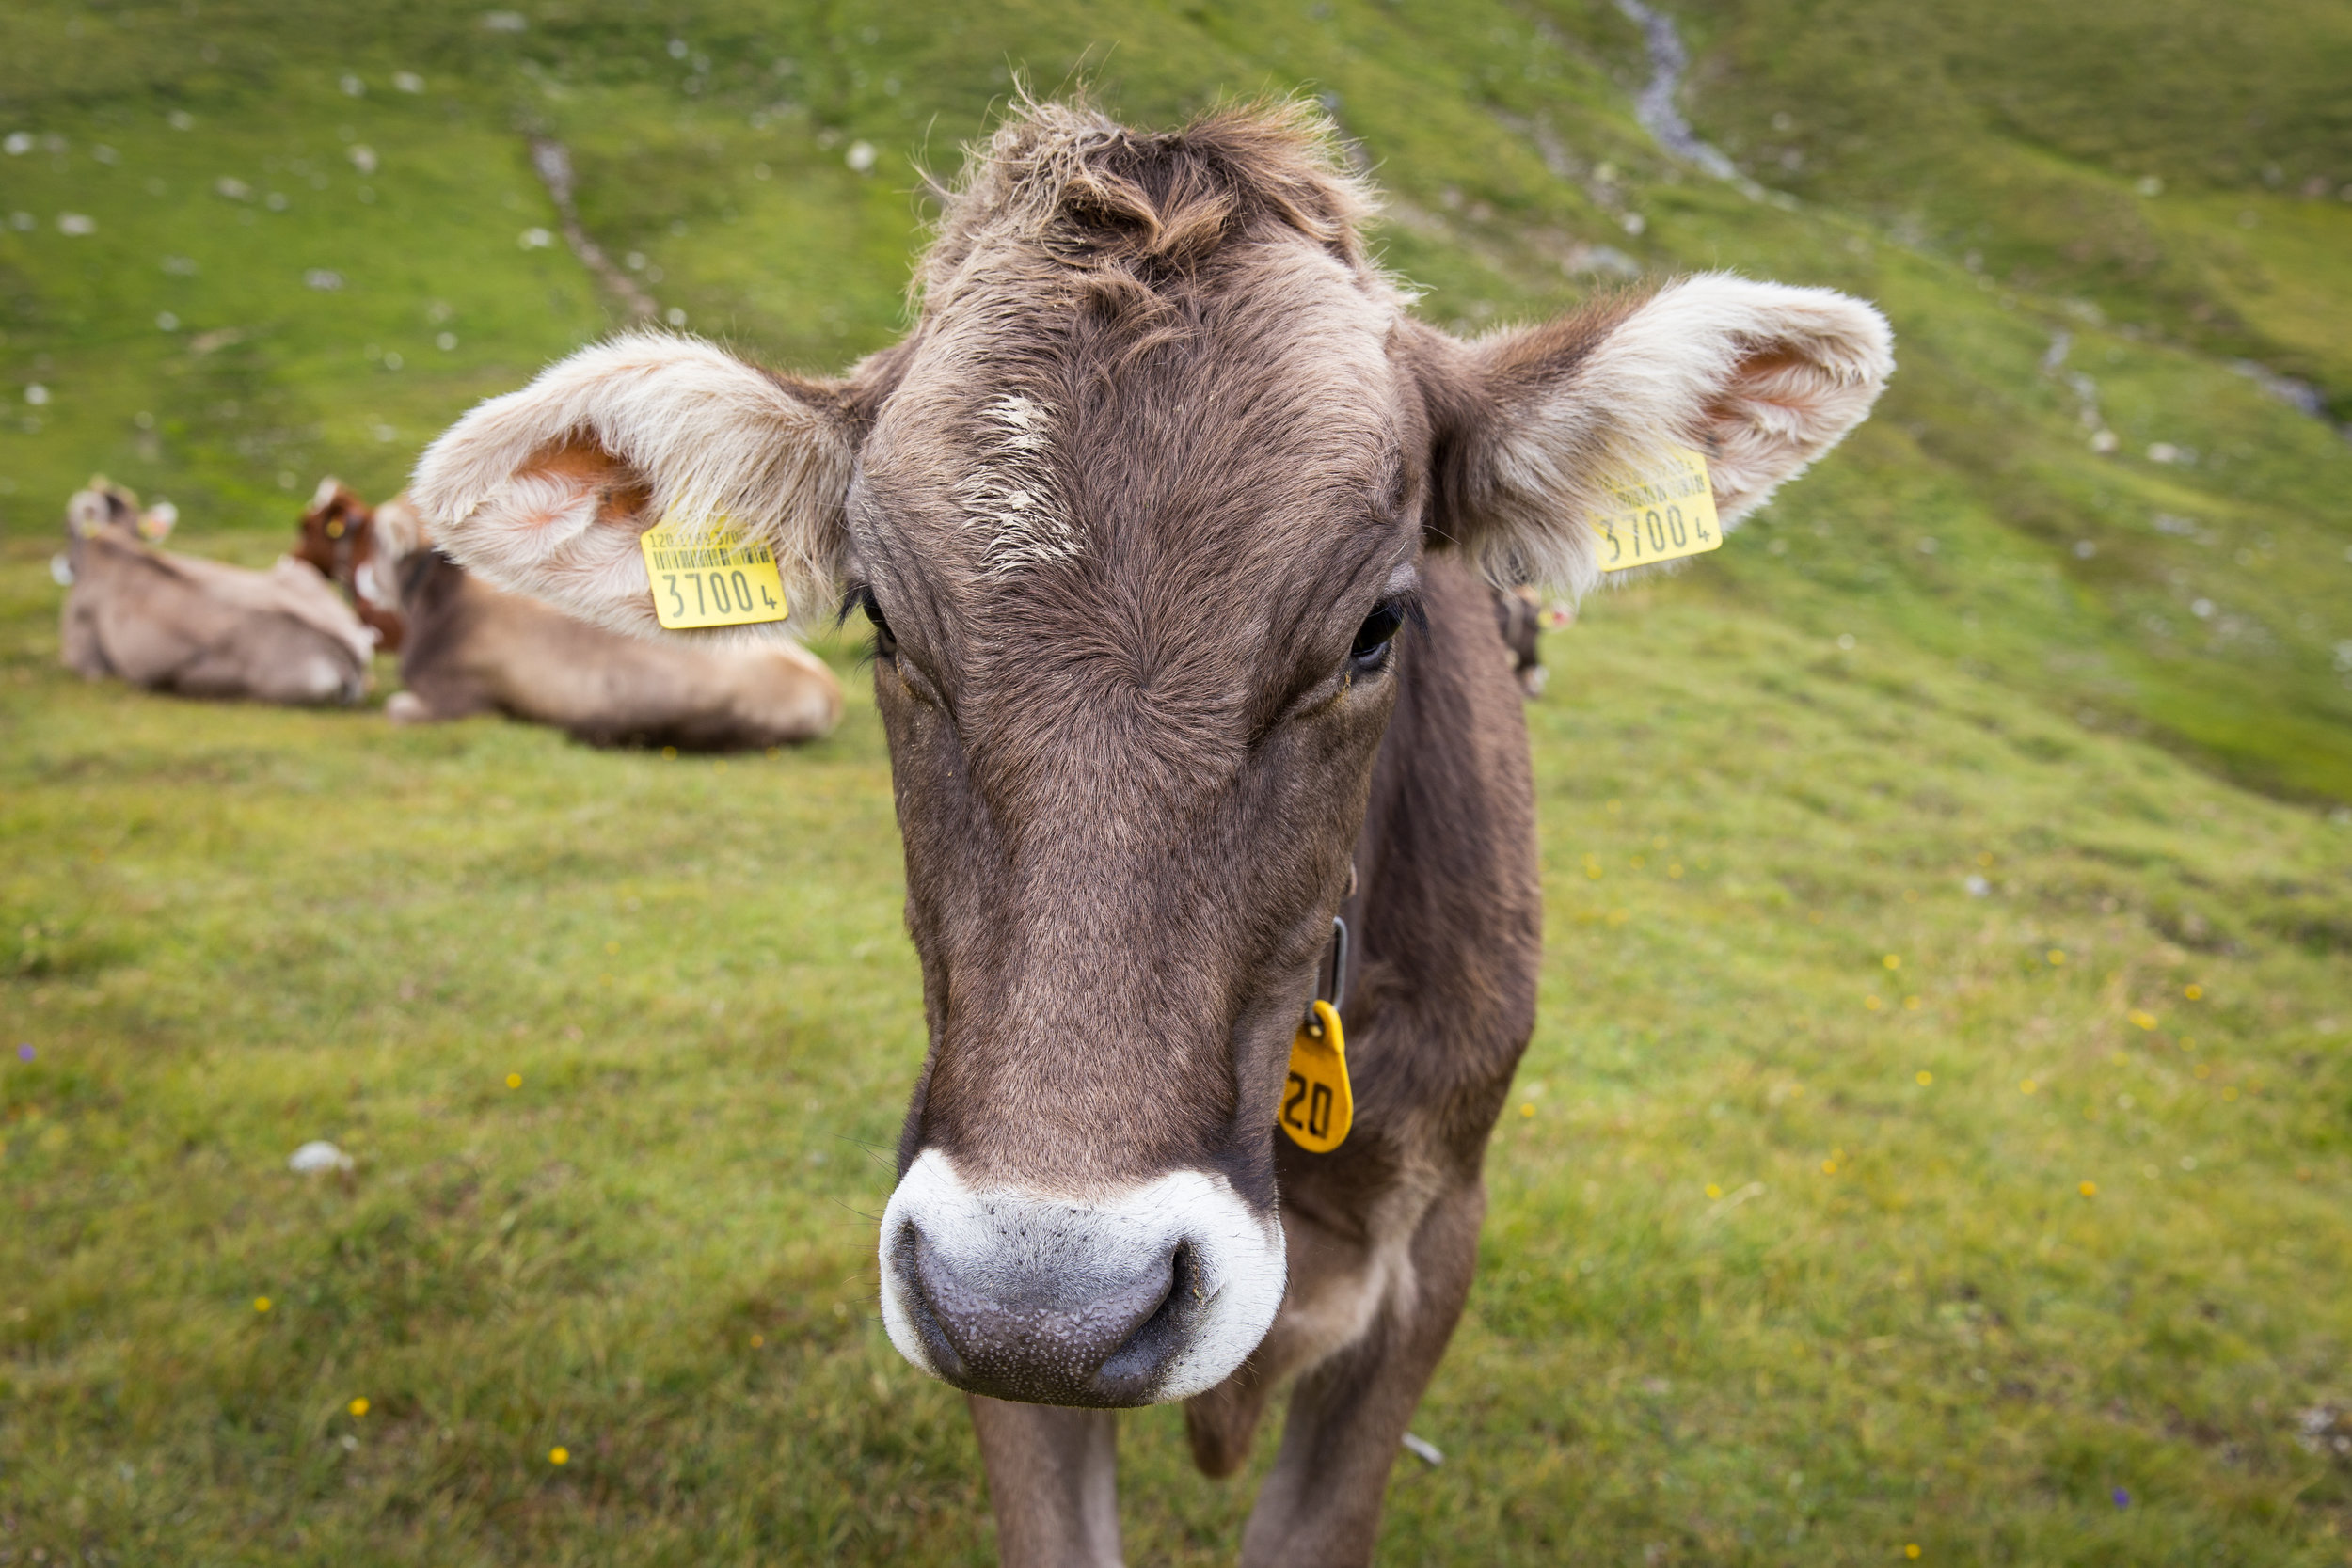 Moo (click to enlarge)